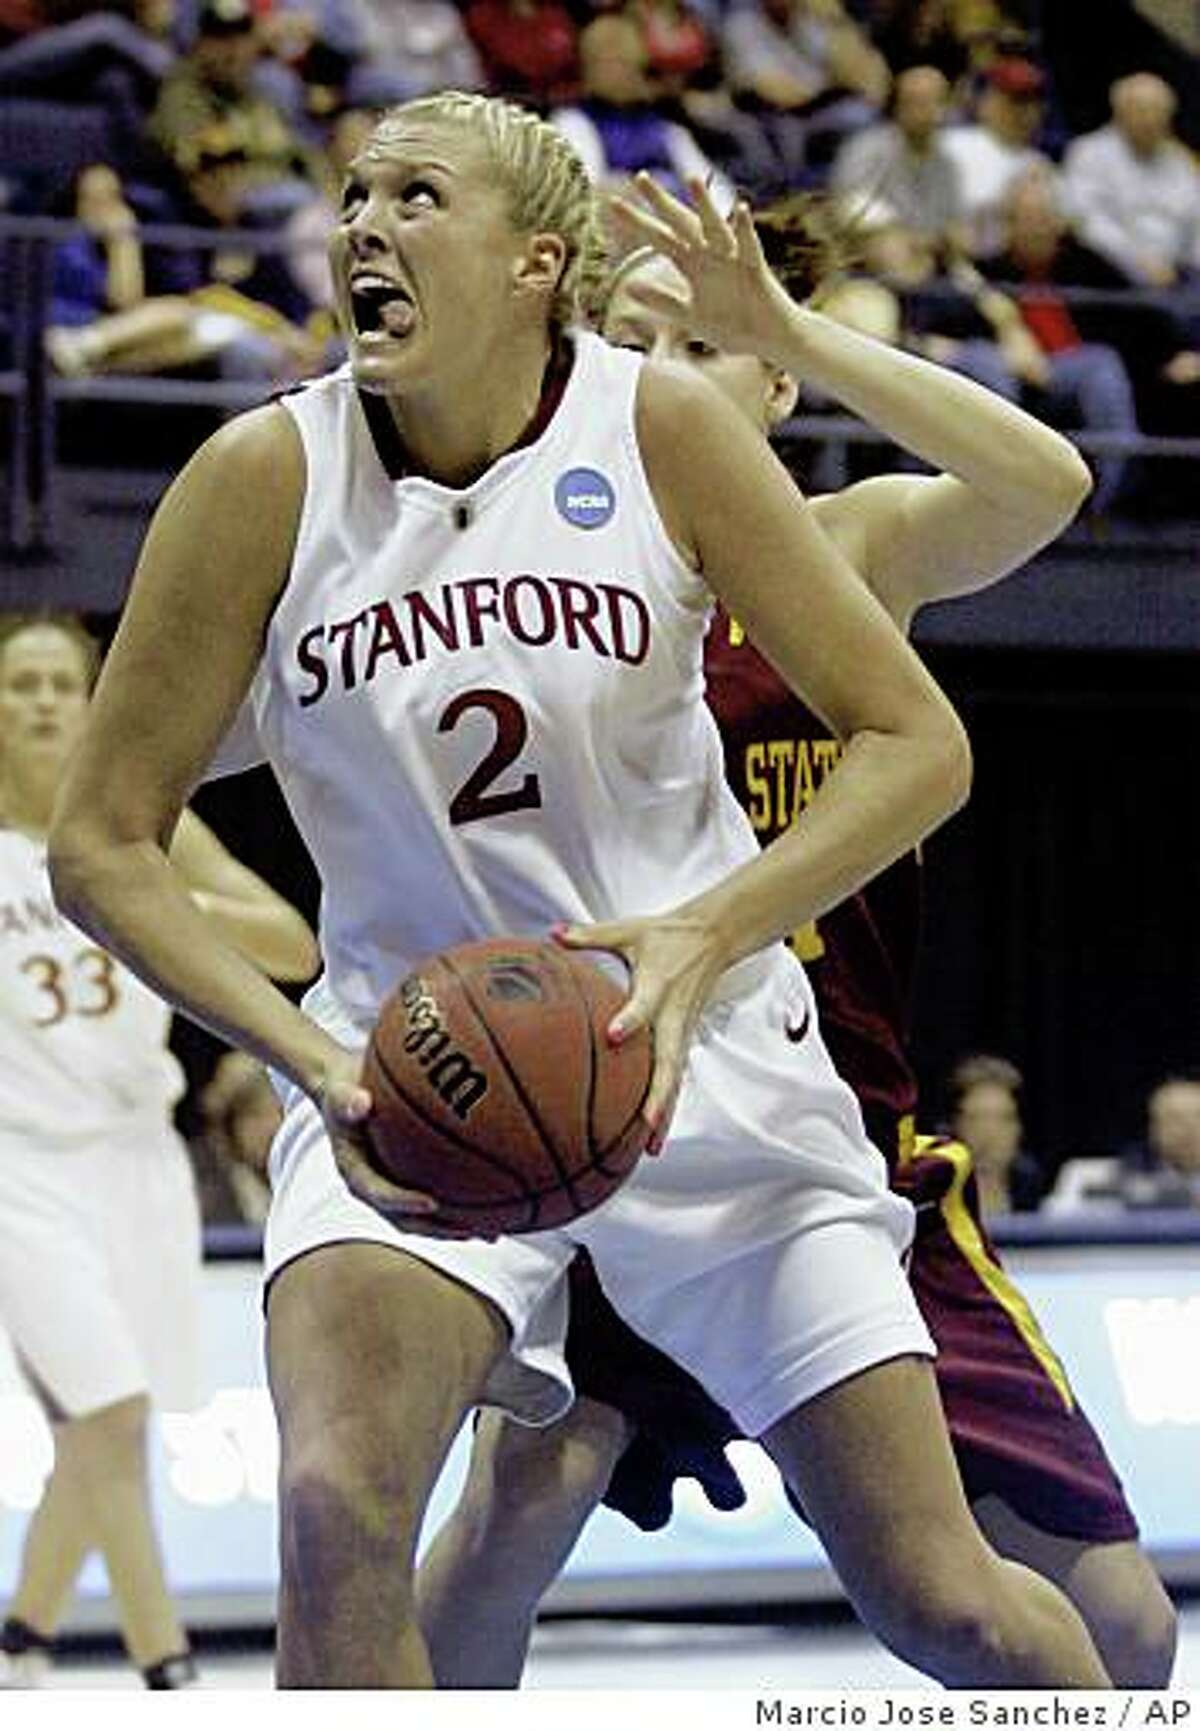 Stanford forward Jayne Appel (2) drives to the basket in the first half of a women's NCAA tournament regional championship college basketball game against Iowa State in Berkeley, Calif., Monday, March 30, 2009. (AP Photo/Marcio Jose Sanchez)